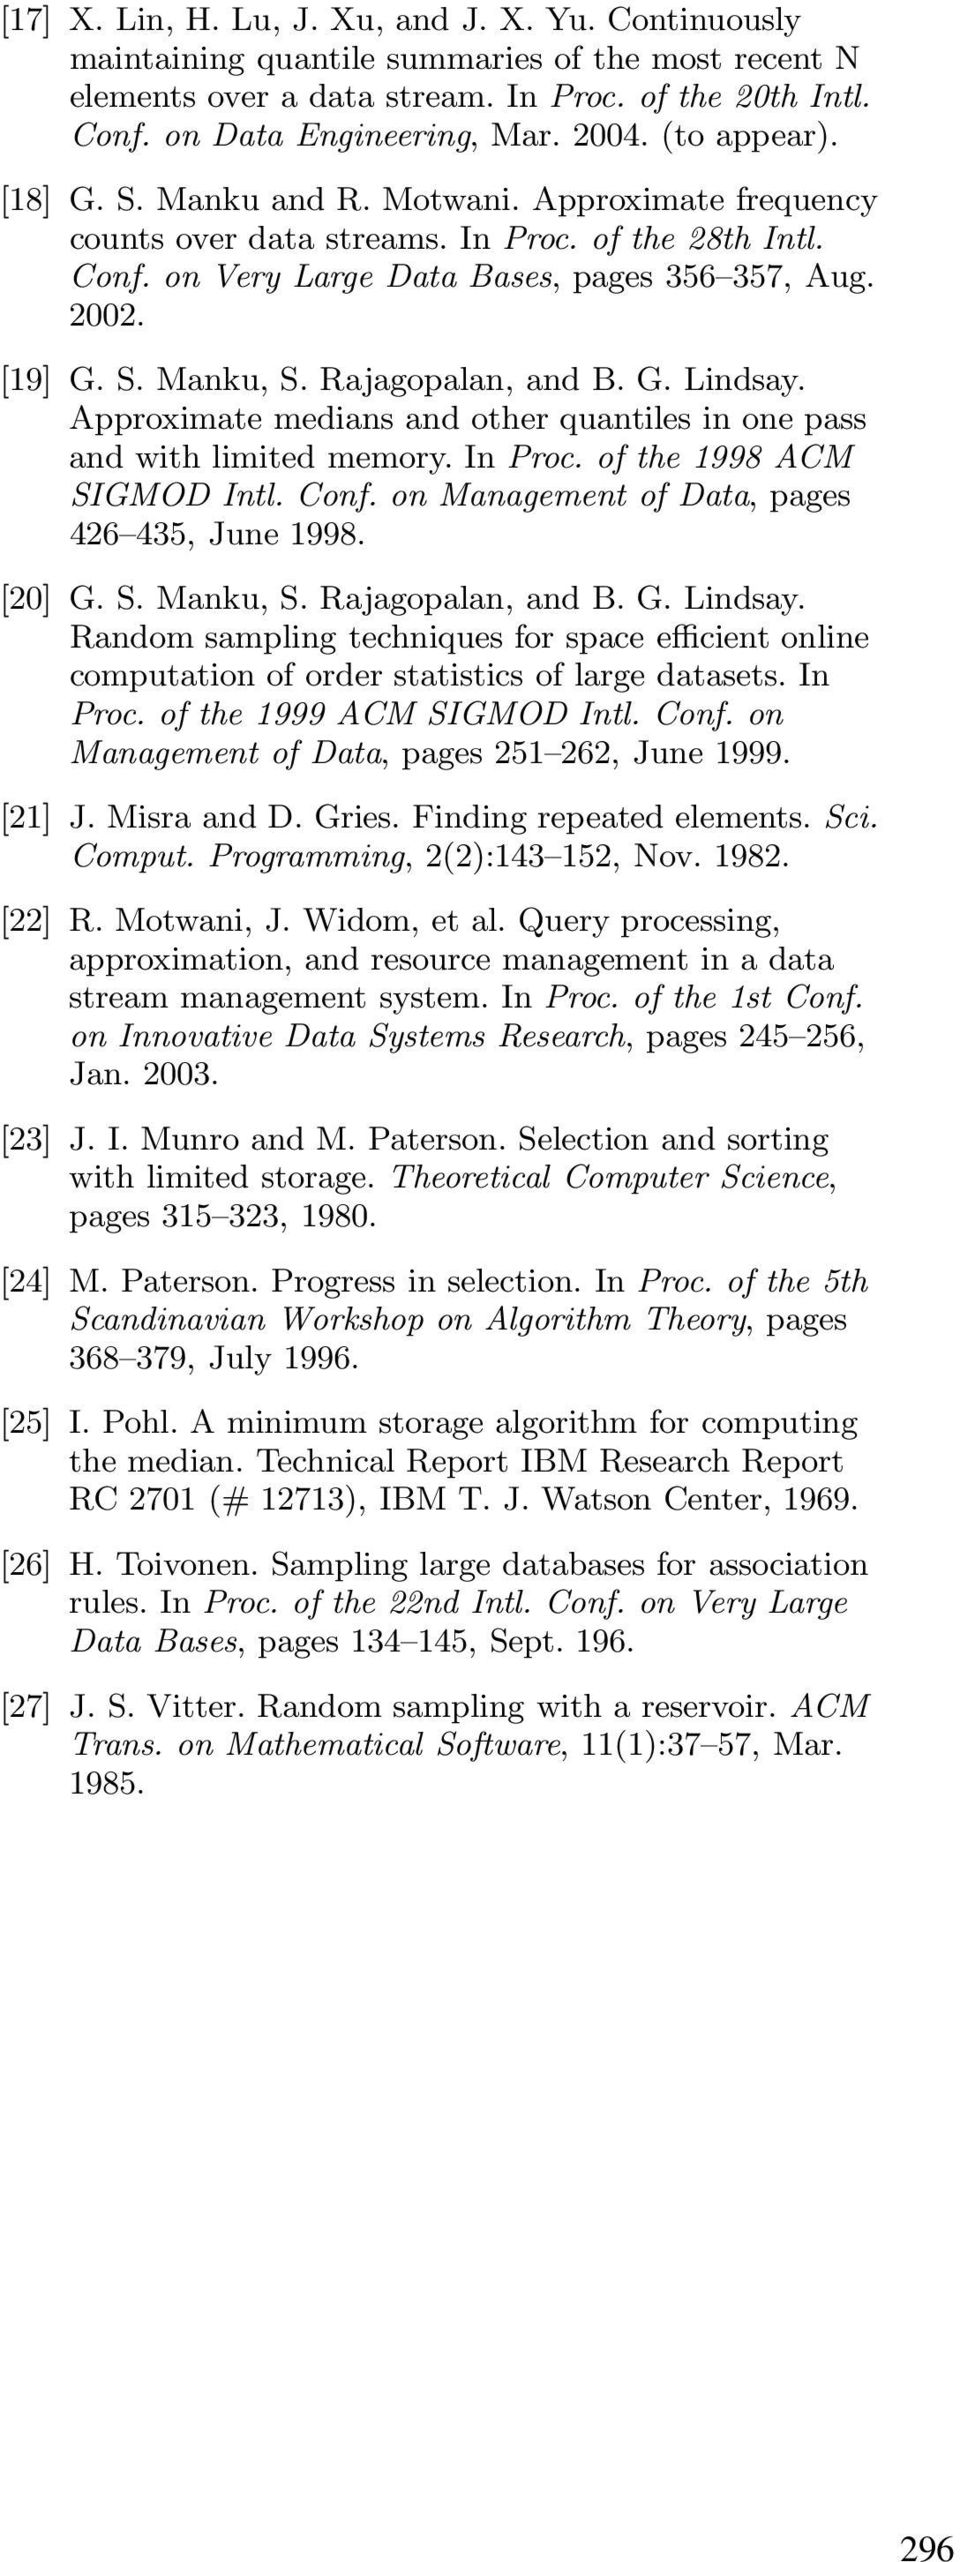 Rajagopalan, and B. G. indsay. Approximate medians and other quantiles in one pass and with limited memory. In Proc. of the 1998 ACM SIGMOD Intl. Conf. on Management of Data, pages 6 35, June 1998.